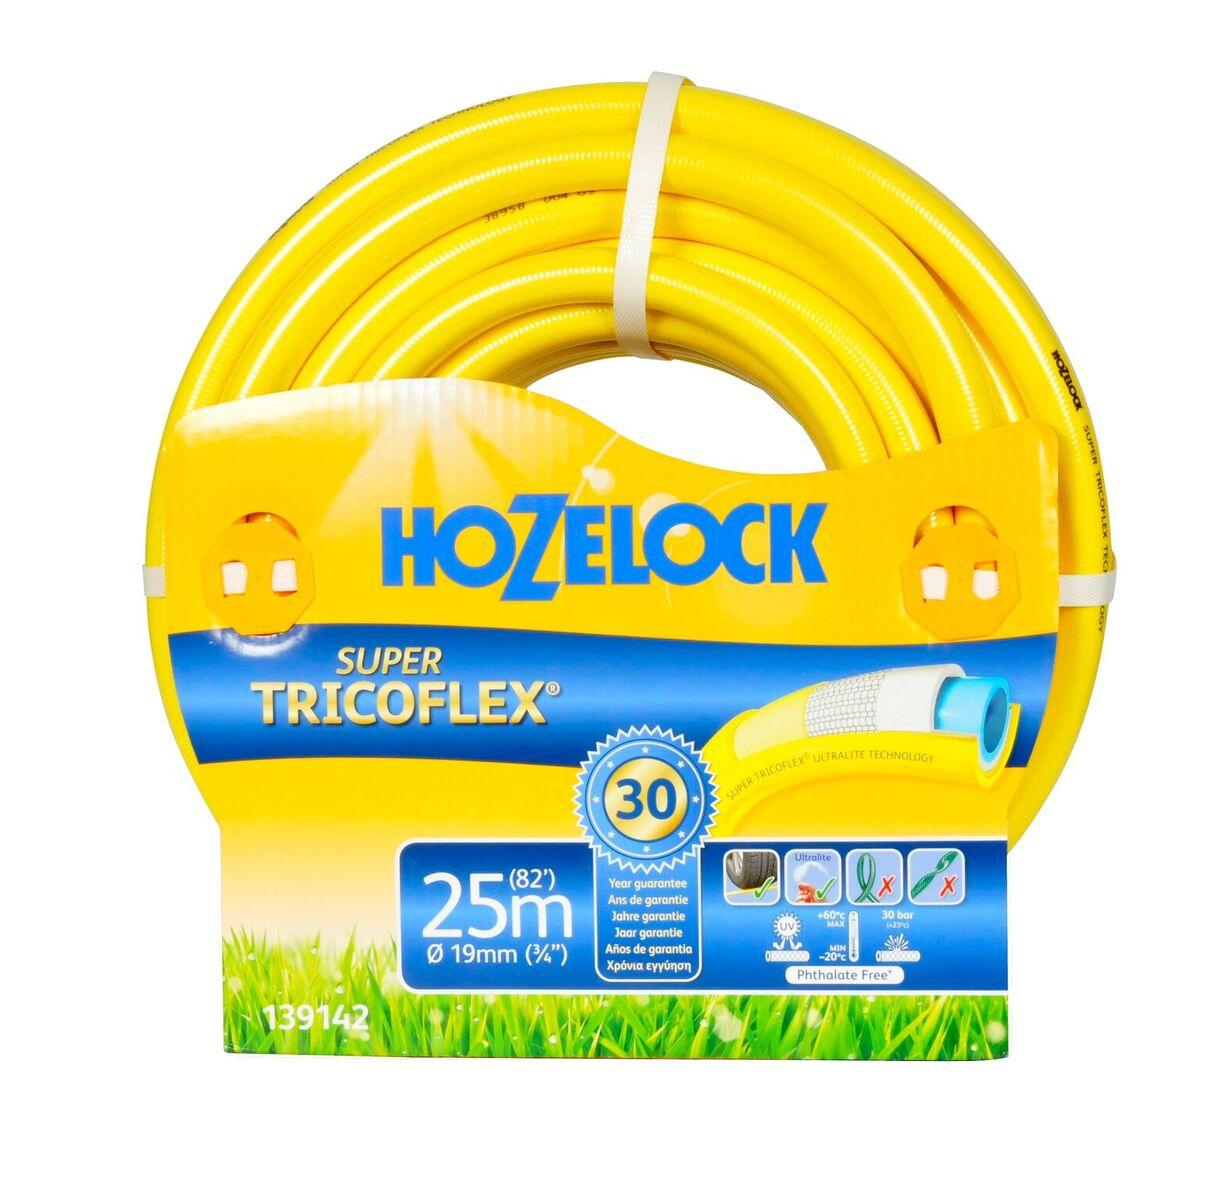 Шланг Hozelock 139142 super tricoflex ultimate шланг hozelock 116787 super tricoflex ultimate